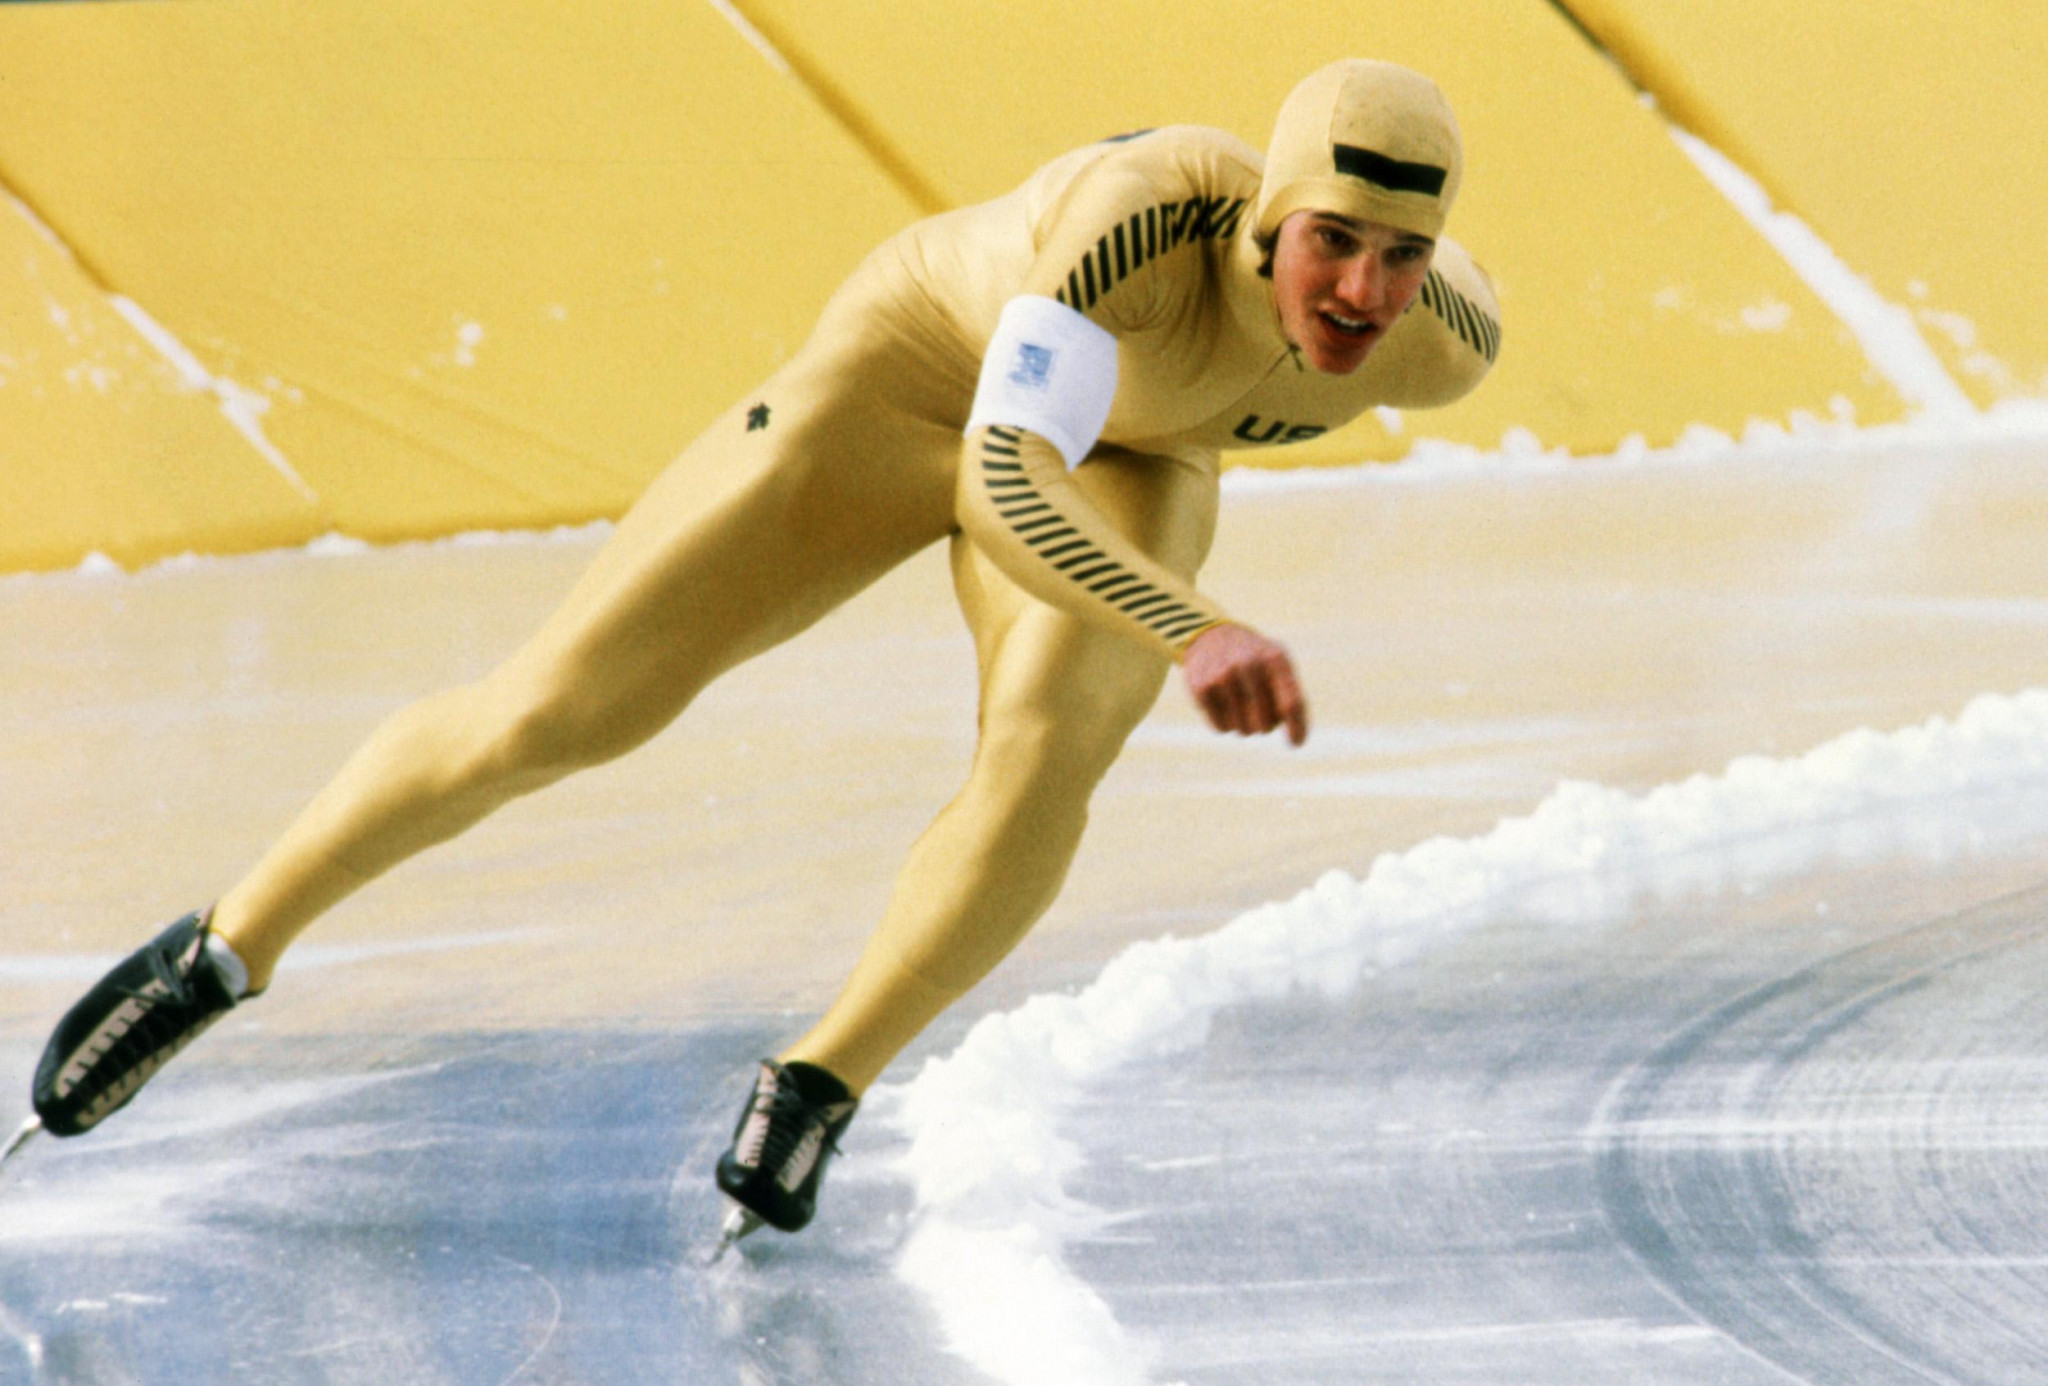 Five-time Olympic speed skating gold medallist and multiple world champion Eric Heiden is one of the Park City-based members of the Committee ©Getty Images